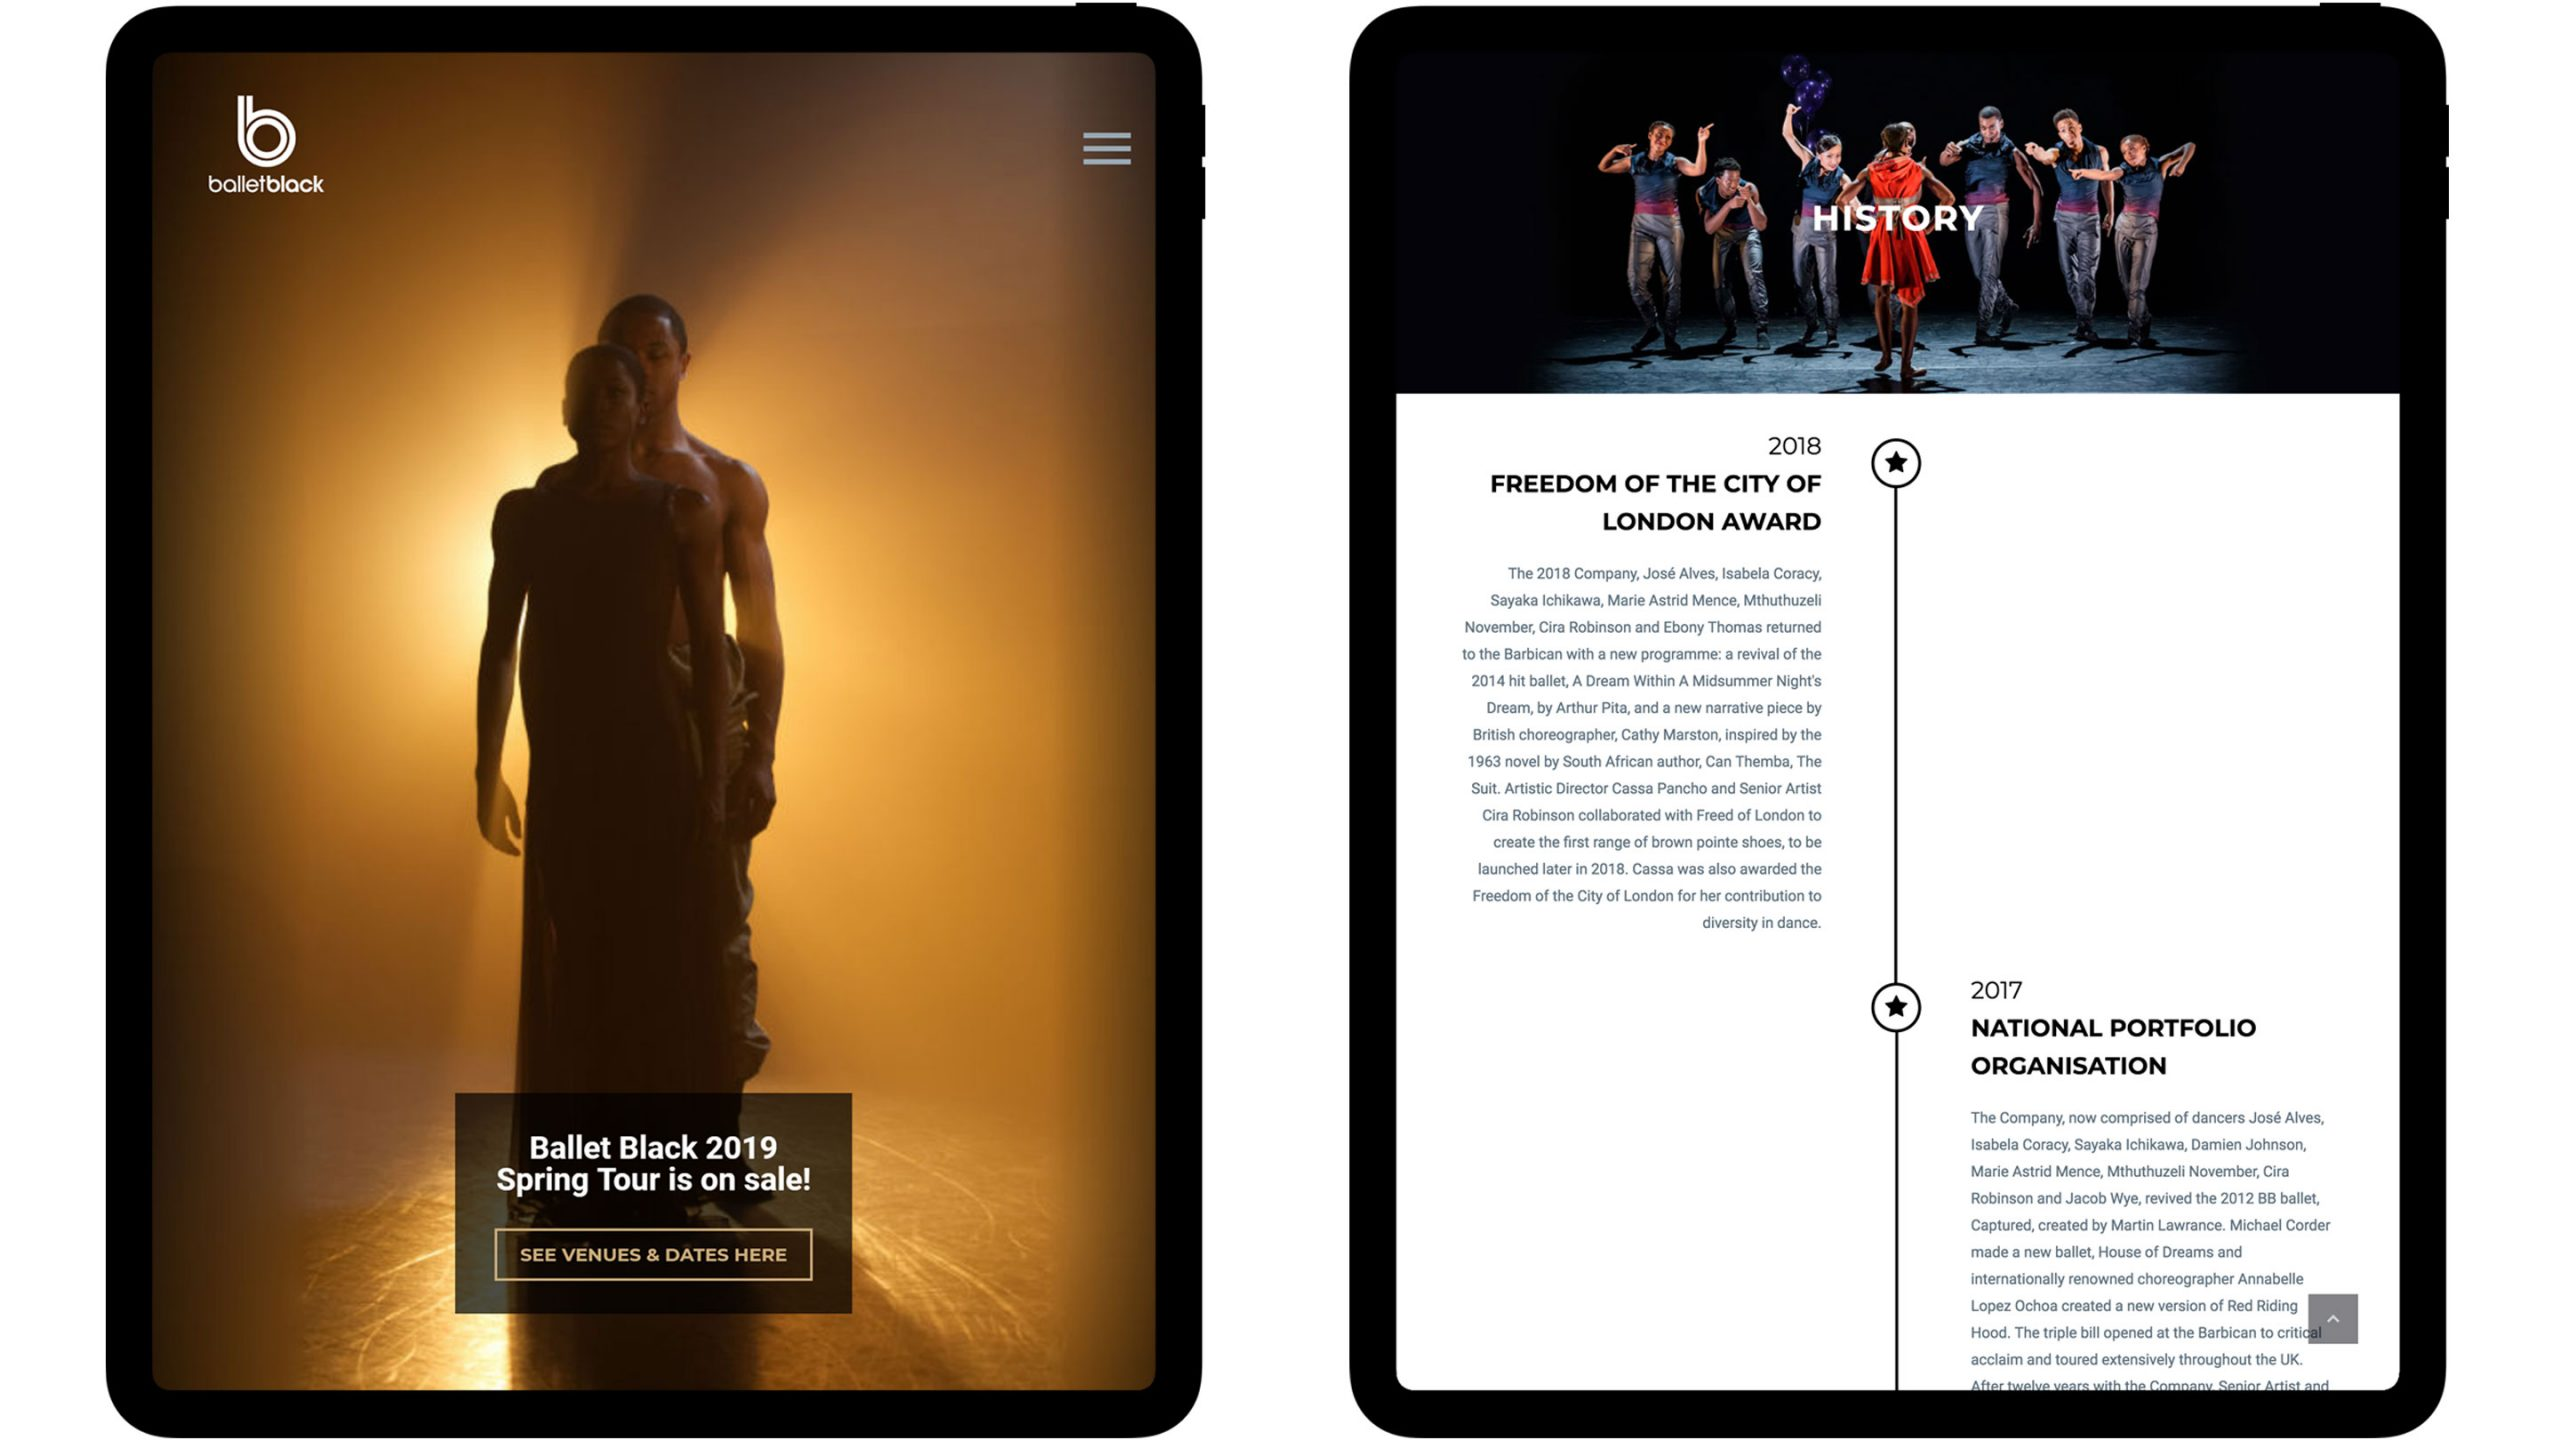 ballet black website on ipad tablets